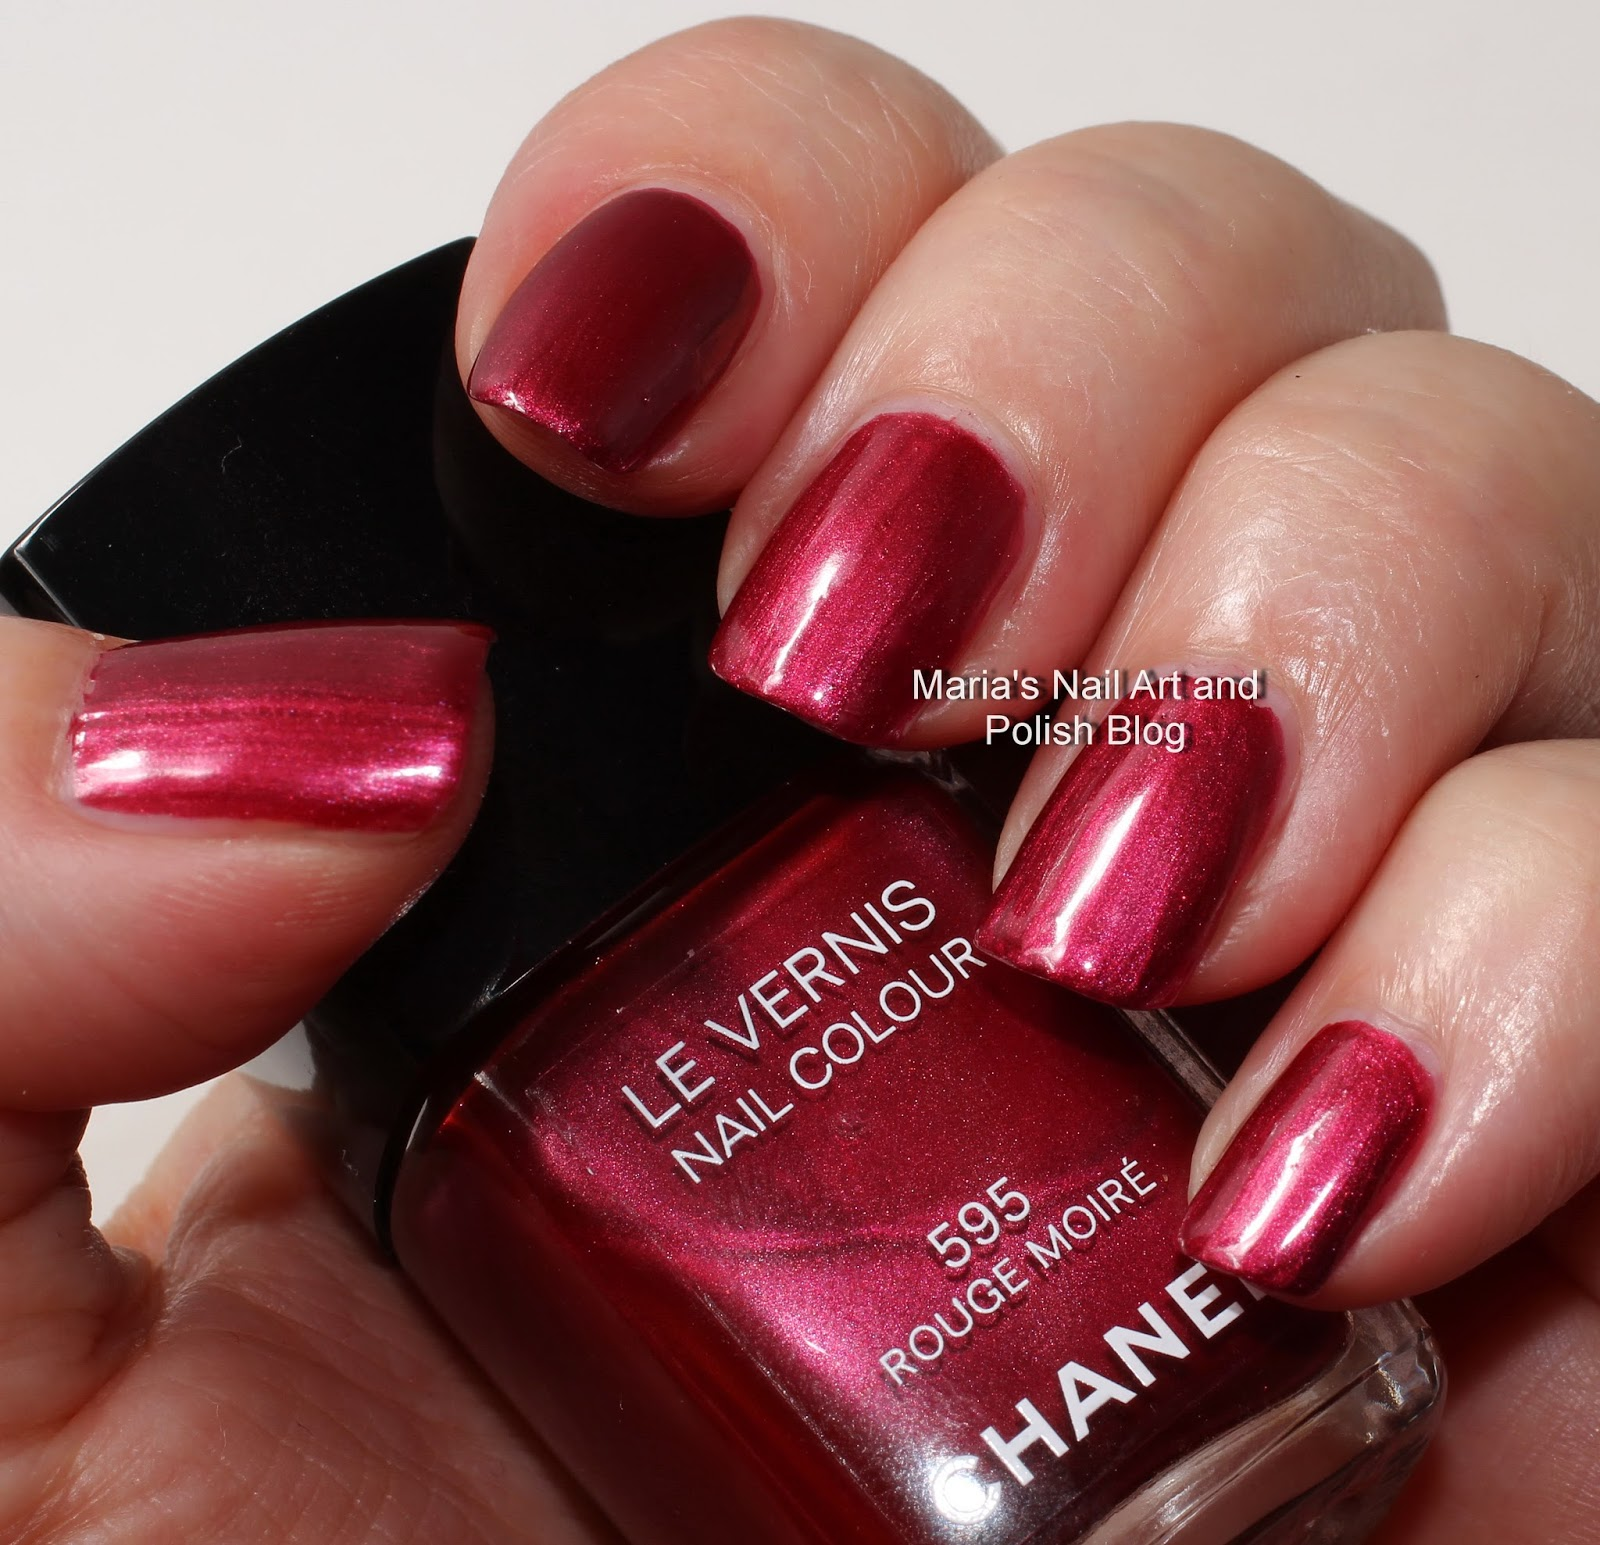 Marias Nail Art And Polish Blog Flushed With Stripes And: Marias Nail Art And Polish Blog: Chanel Rouge Moire 595